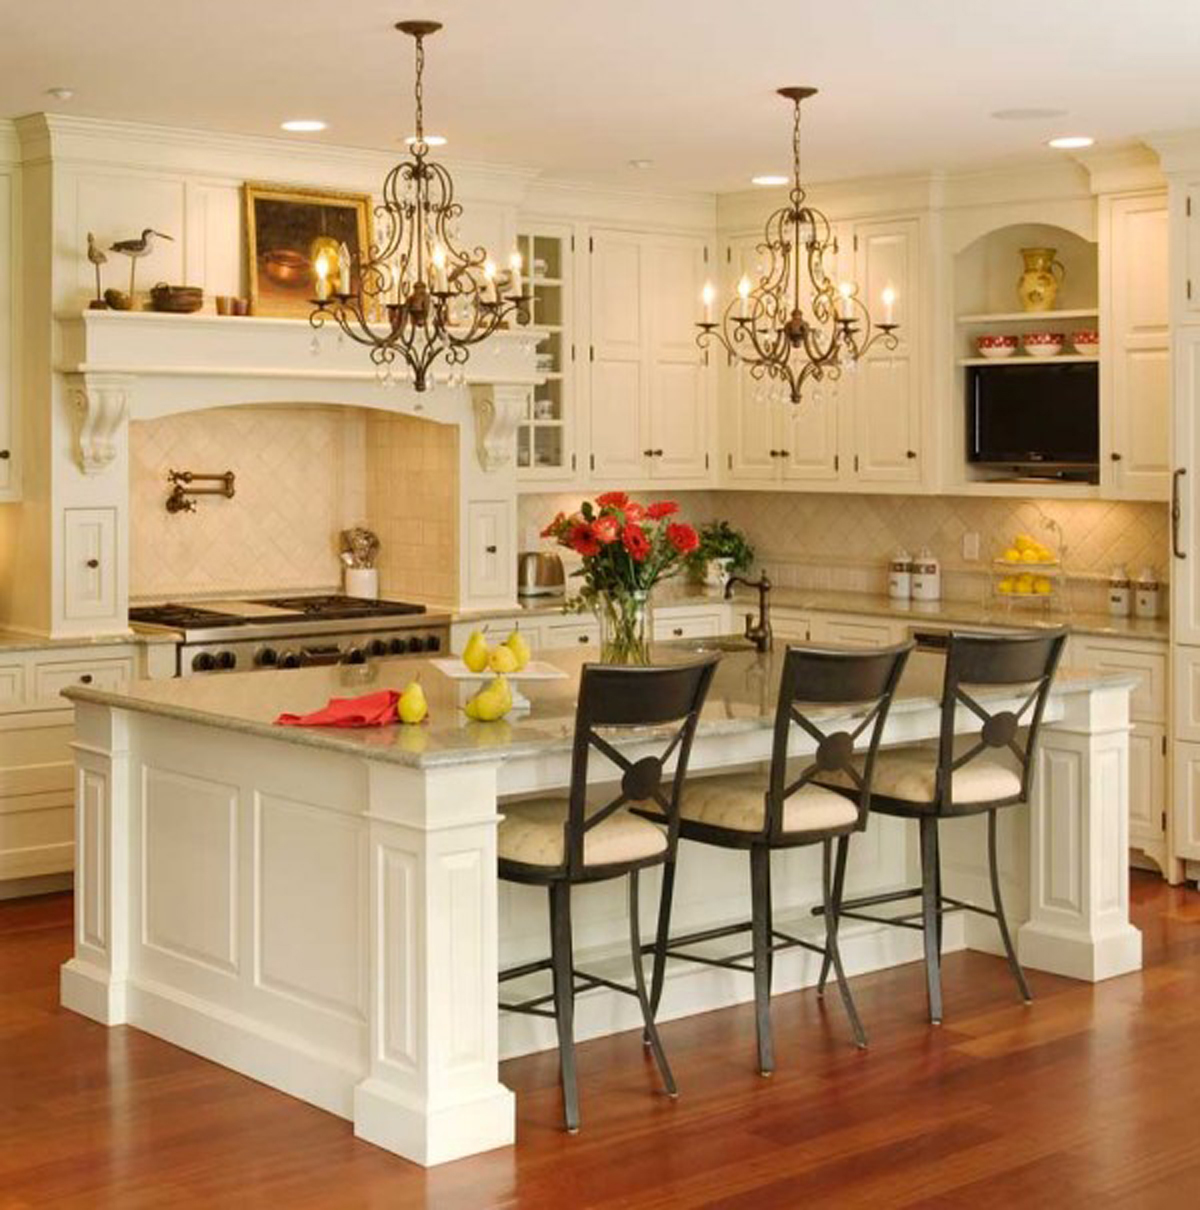 Amazing of Elegant Kitchen Designs Picture Have Kitchen D 57